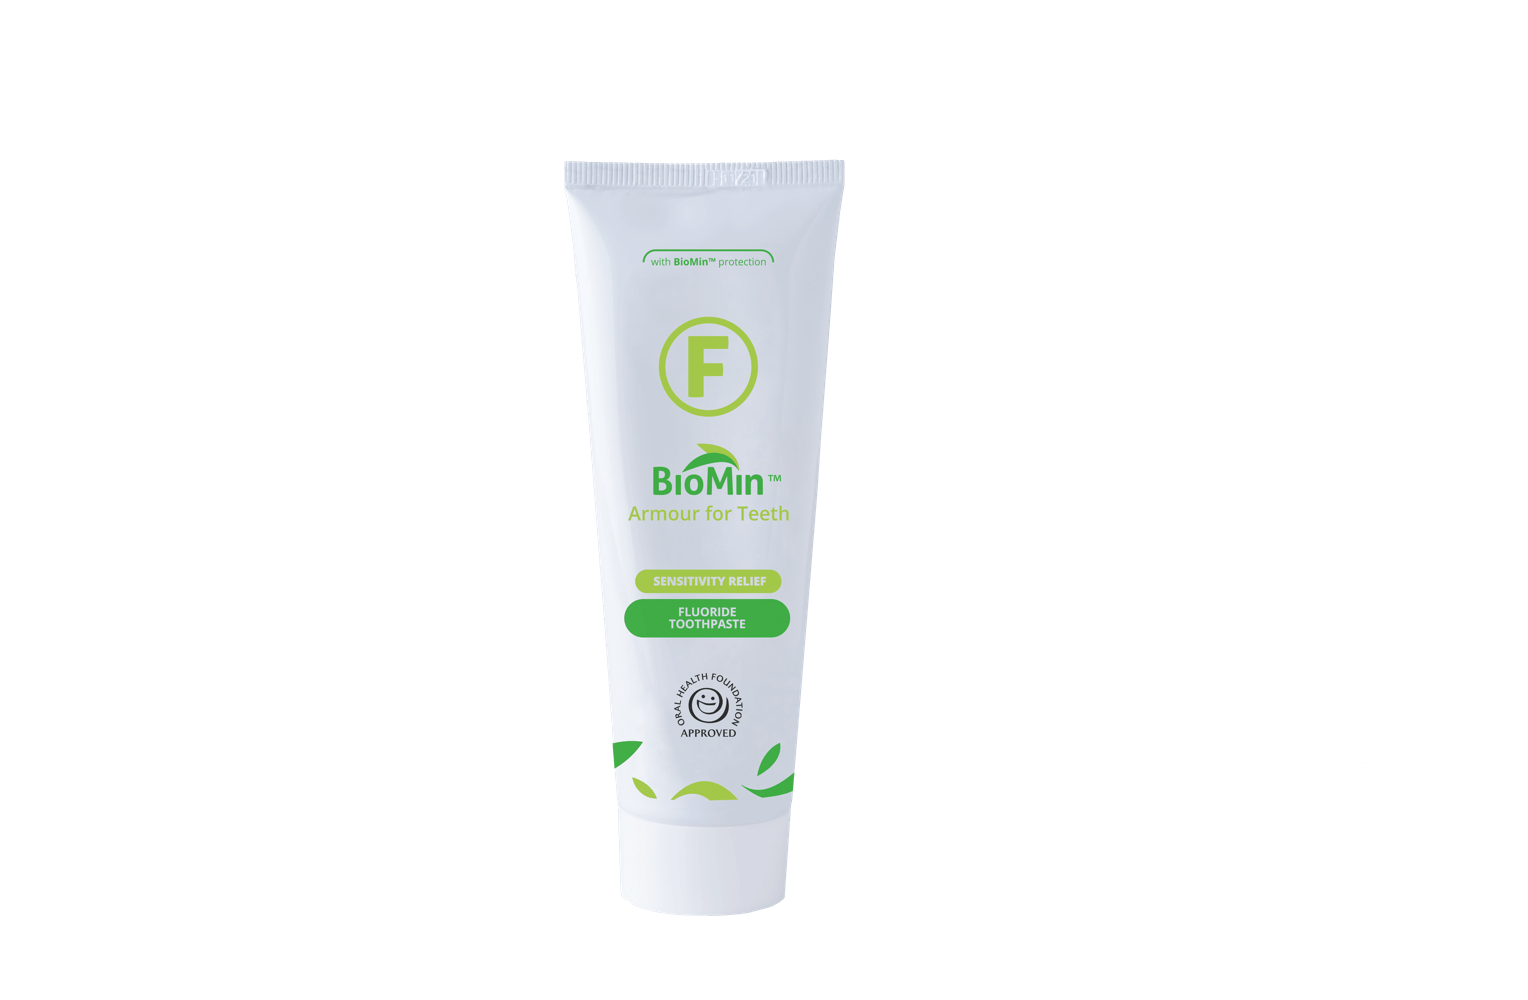 BioMin F Product - Find out more